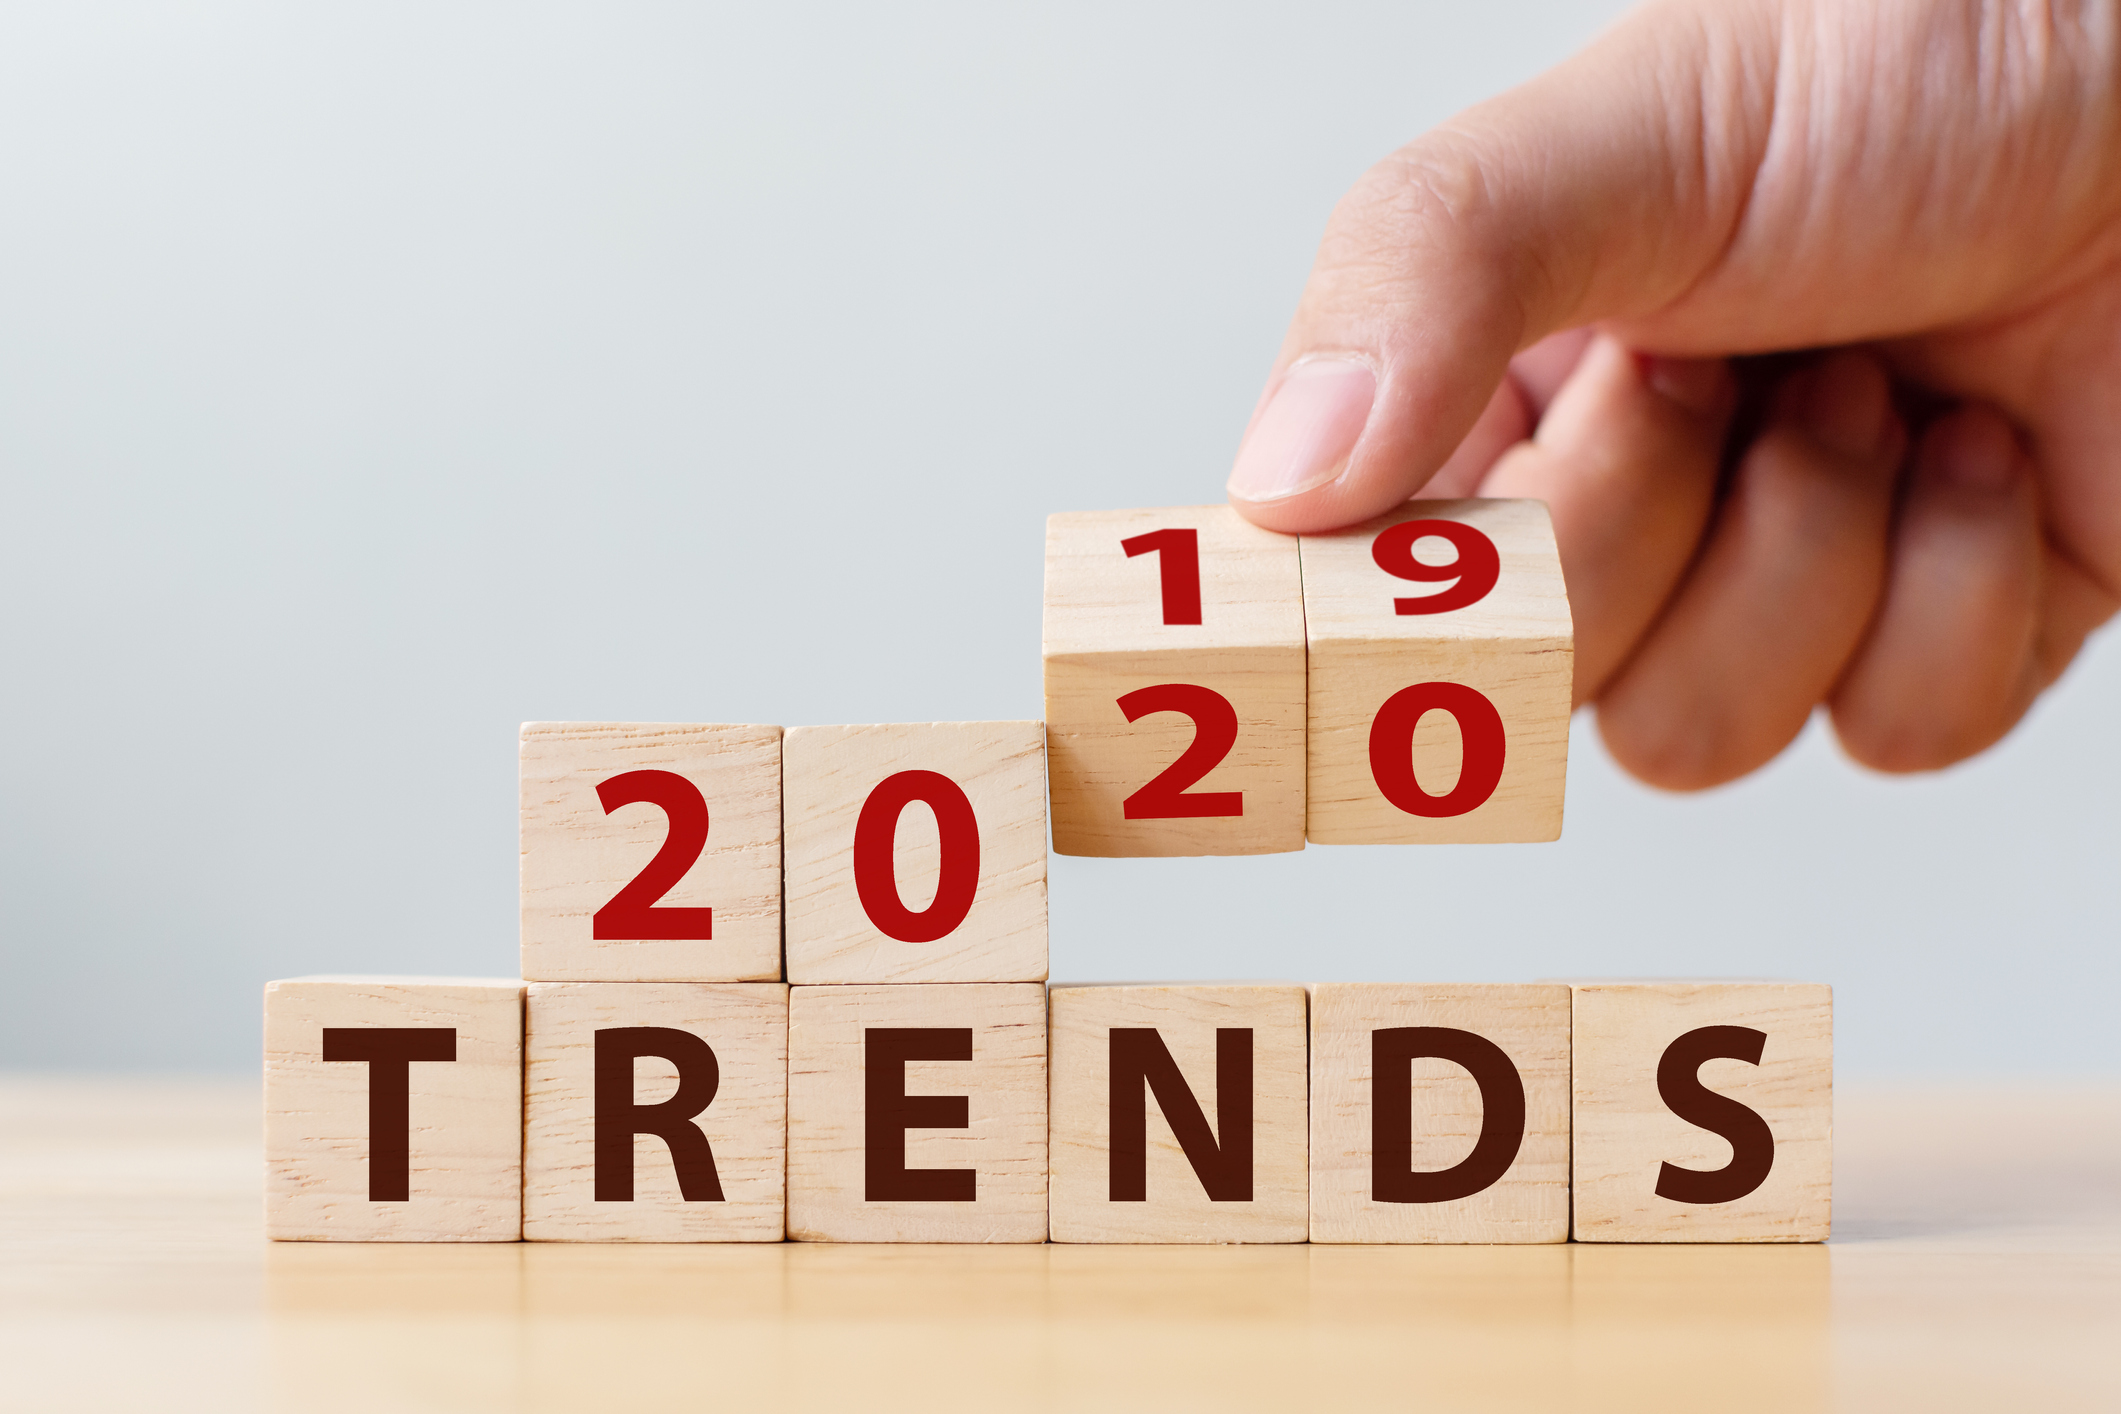 2020 trends image